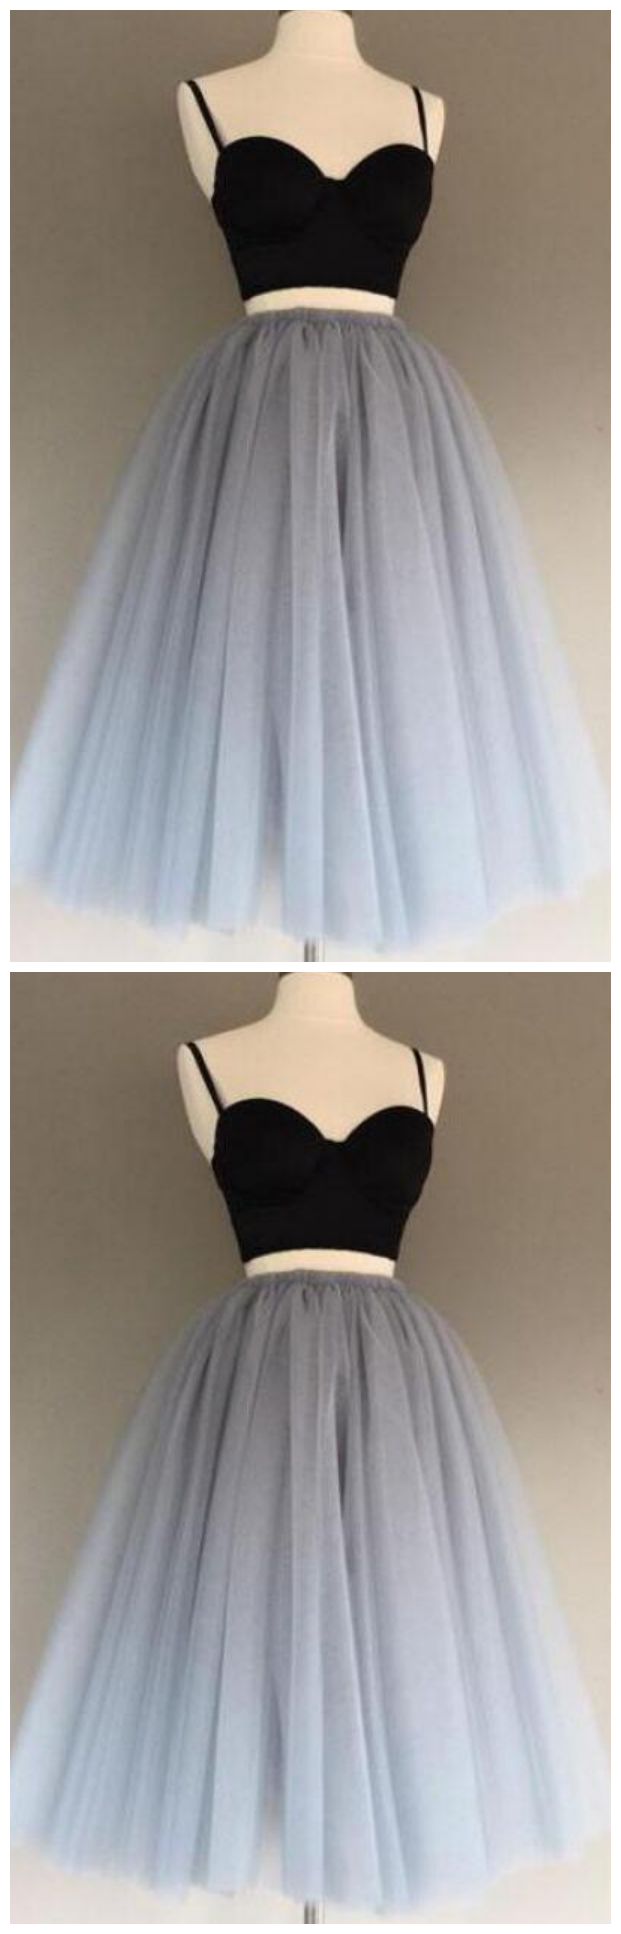 Sexy Two Pieces Sleeveless A Line Prom Dresses Short Homecoming Dresses